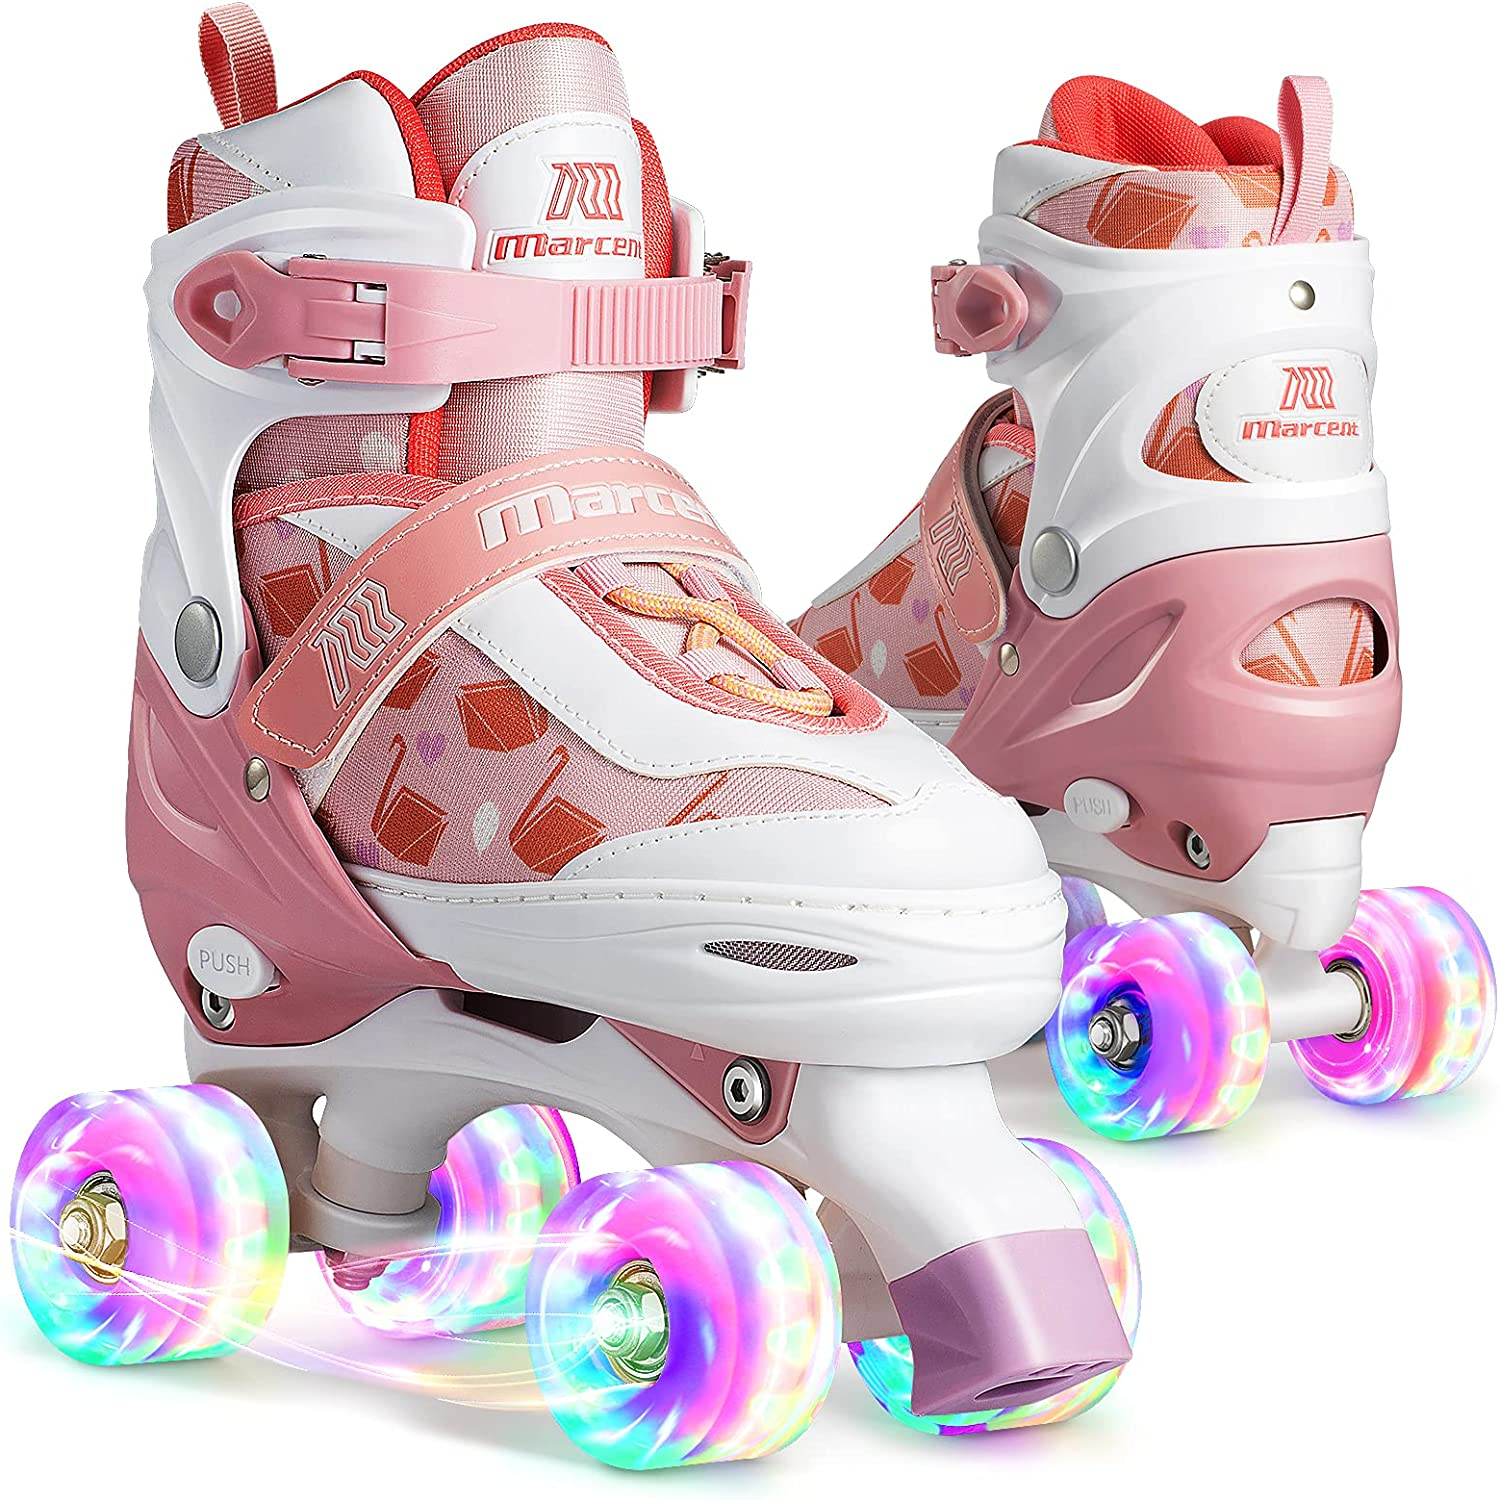 Marcent Roller All stores are sold Skates for Max 49% OFF Girls Boys Wheels up Light Kids with